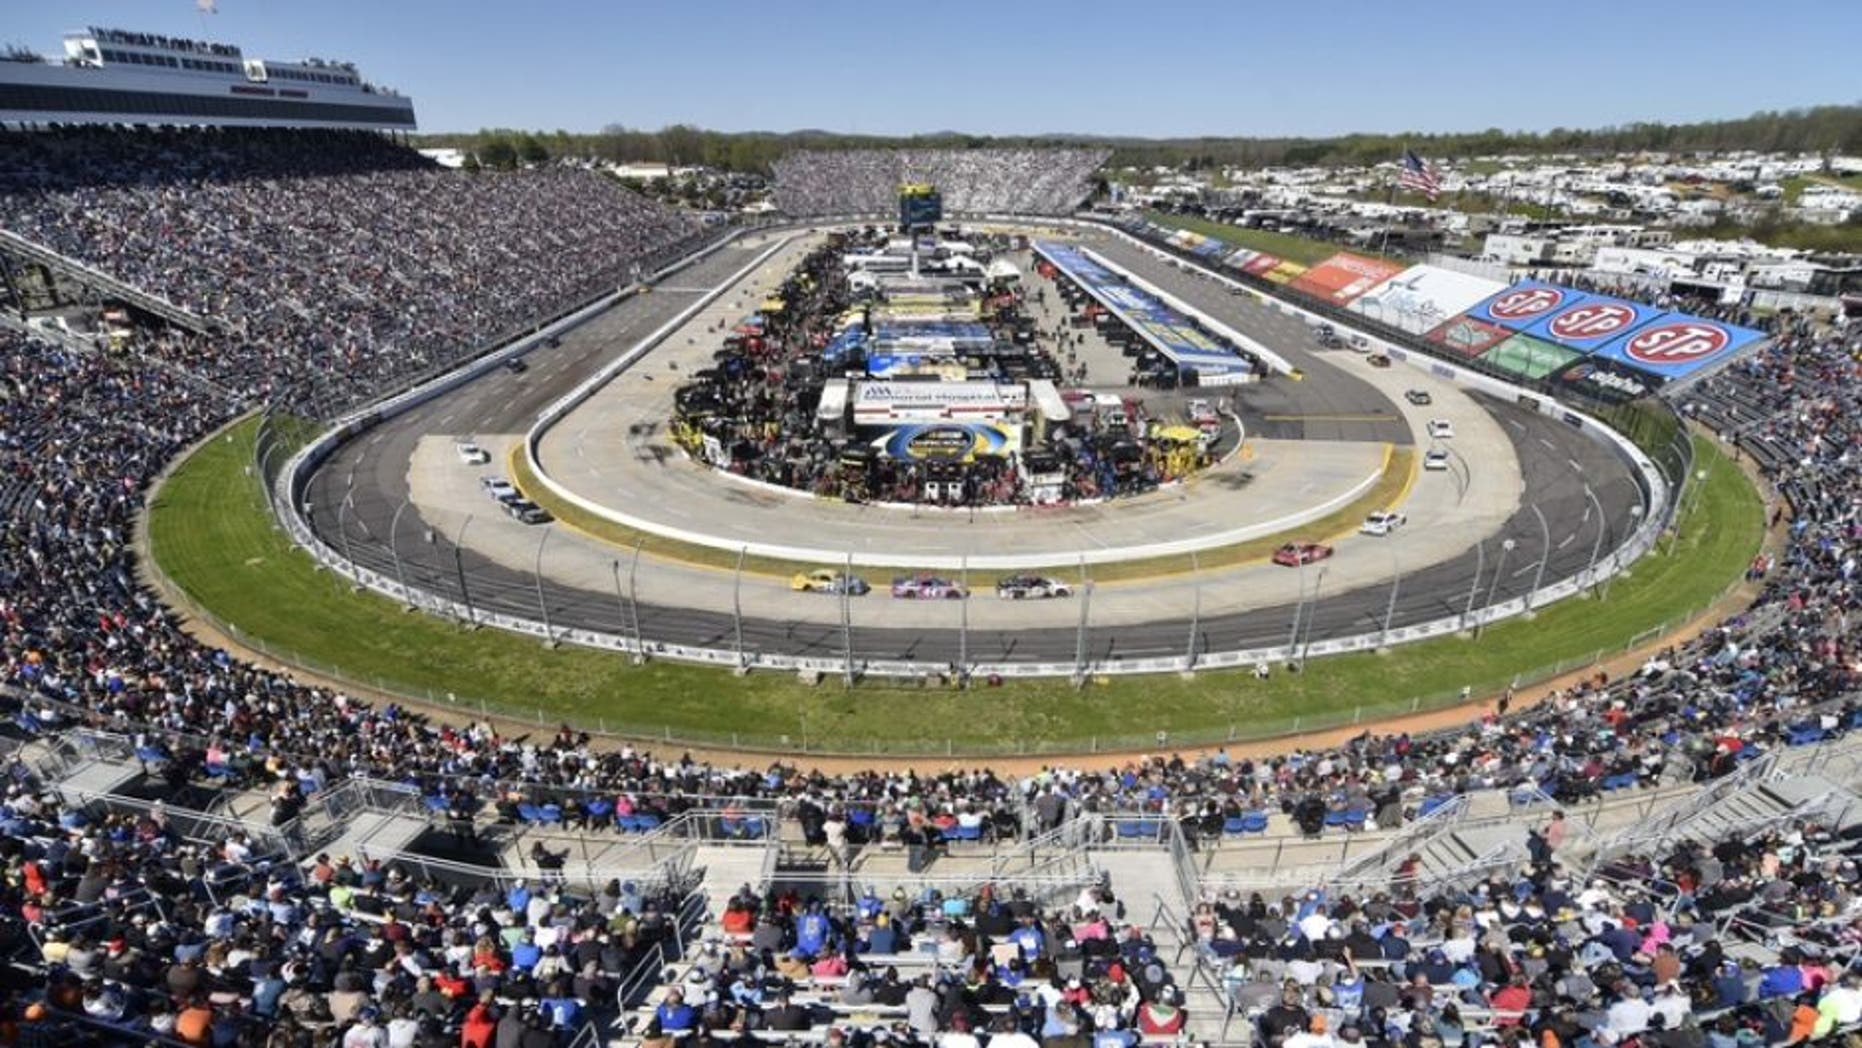 Apr 2, 2016; Martinsville, VA, USA; A general view of Martinsville Speedway during the Alpha Energy Solutions 250. Mandatory Credit: Michael Shroyer-USA TODAY Sports